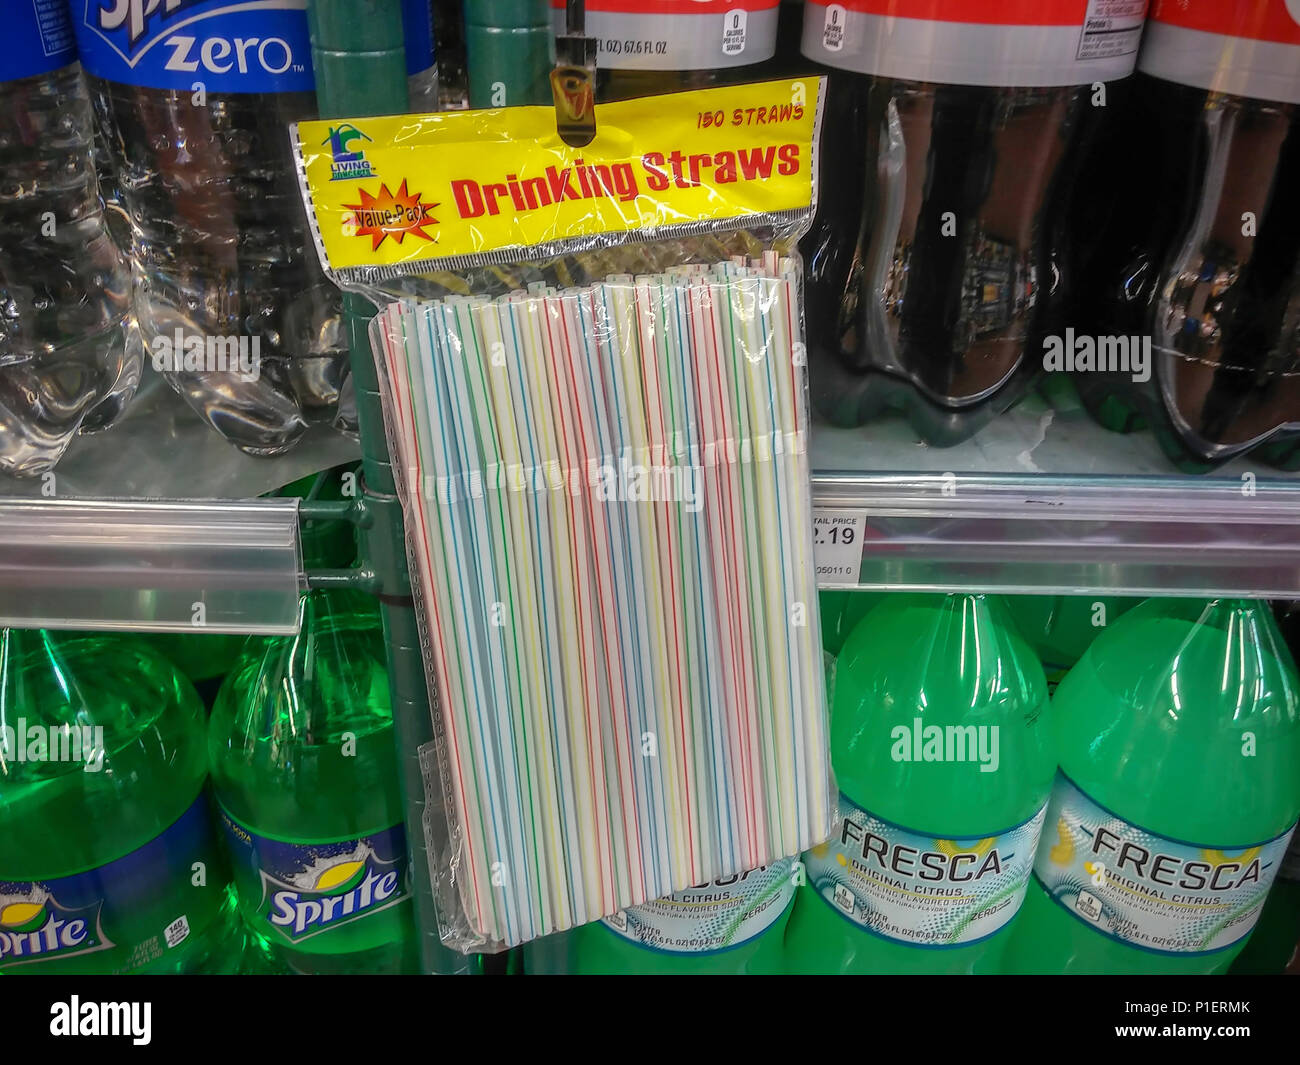 Plastic straws are seen in a supermarket in New York on Friday, May 25, 2018, Many cities and countries are pressuring businesses to replace plastic straws, as well as other single-use plastic products, as they end up entering the waste stream and eventually into the oceans. Plastic straws are in the top ten garbage items found on beaches. (© Richard B. Levine) - Stock Image